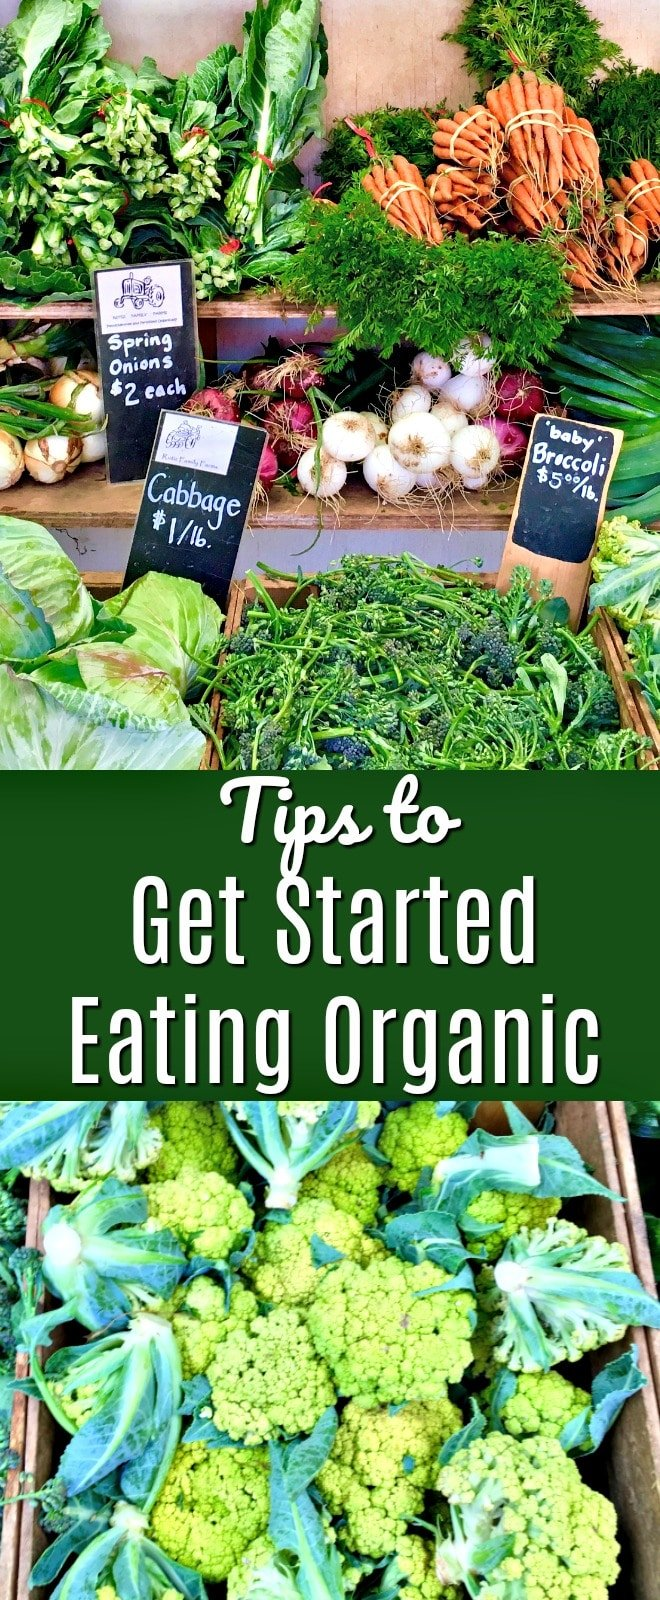 8 Tips for Getting Started Eating Organic, including how to stay on budget | clean eating, organic food, how to eat organic, budget food shopping